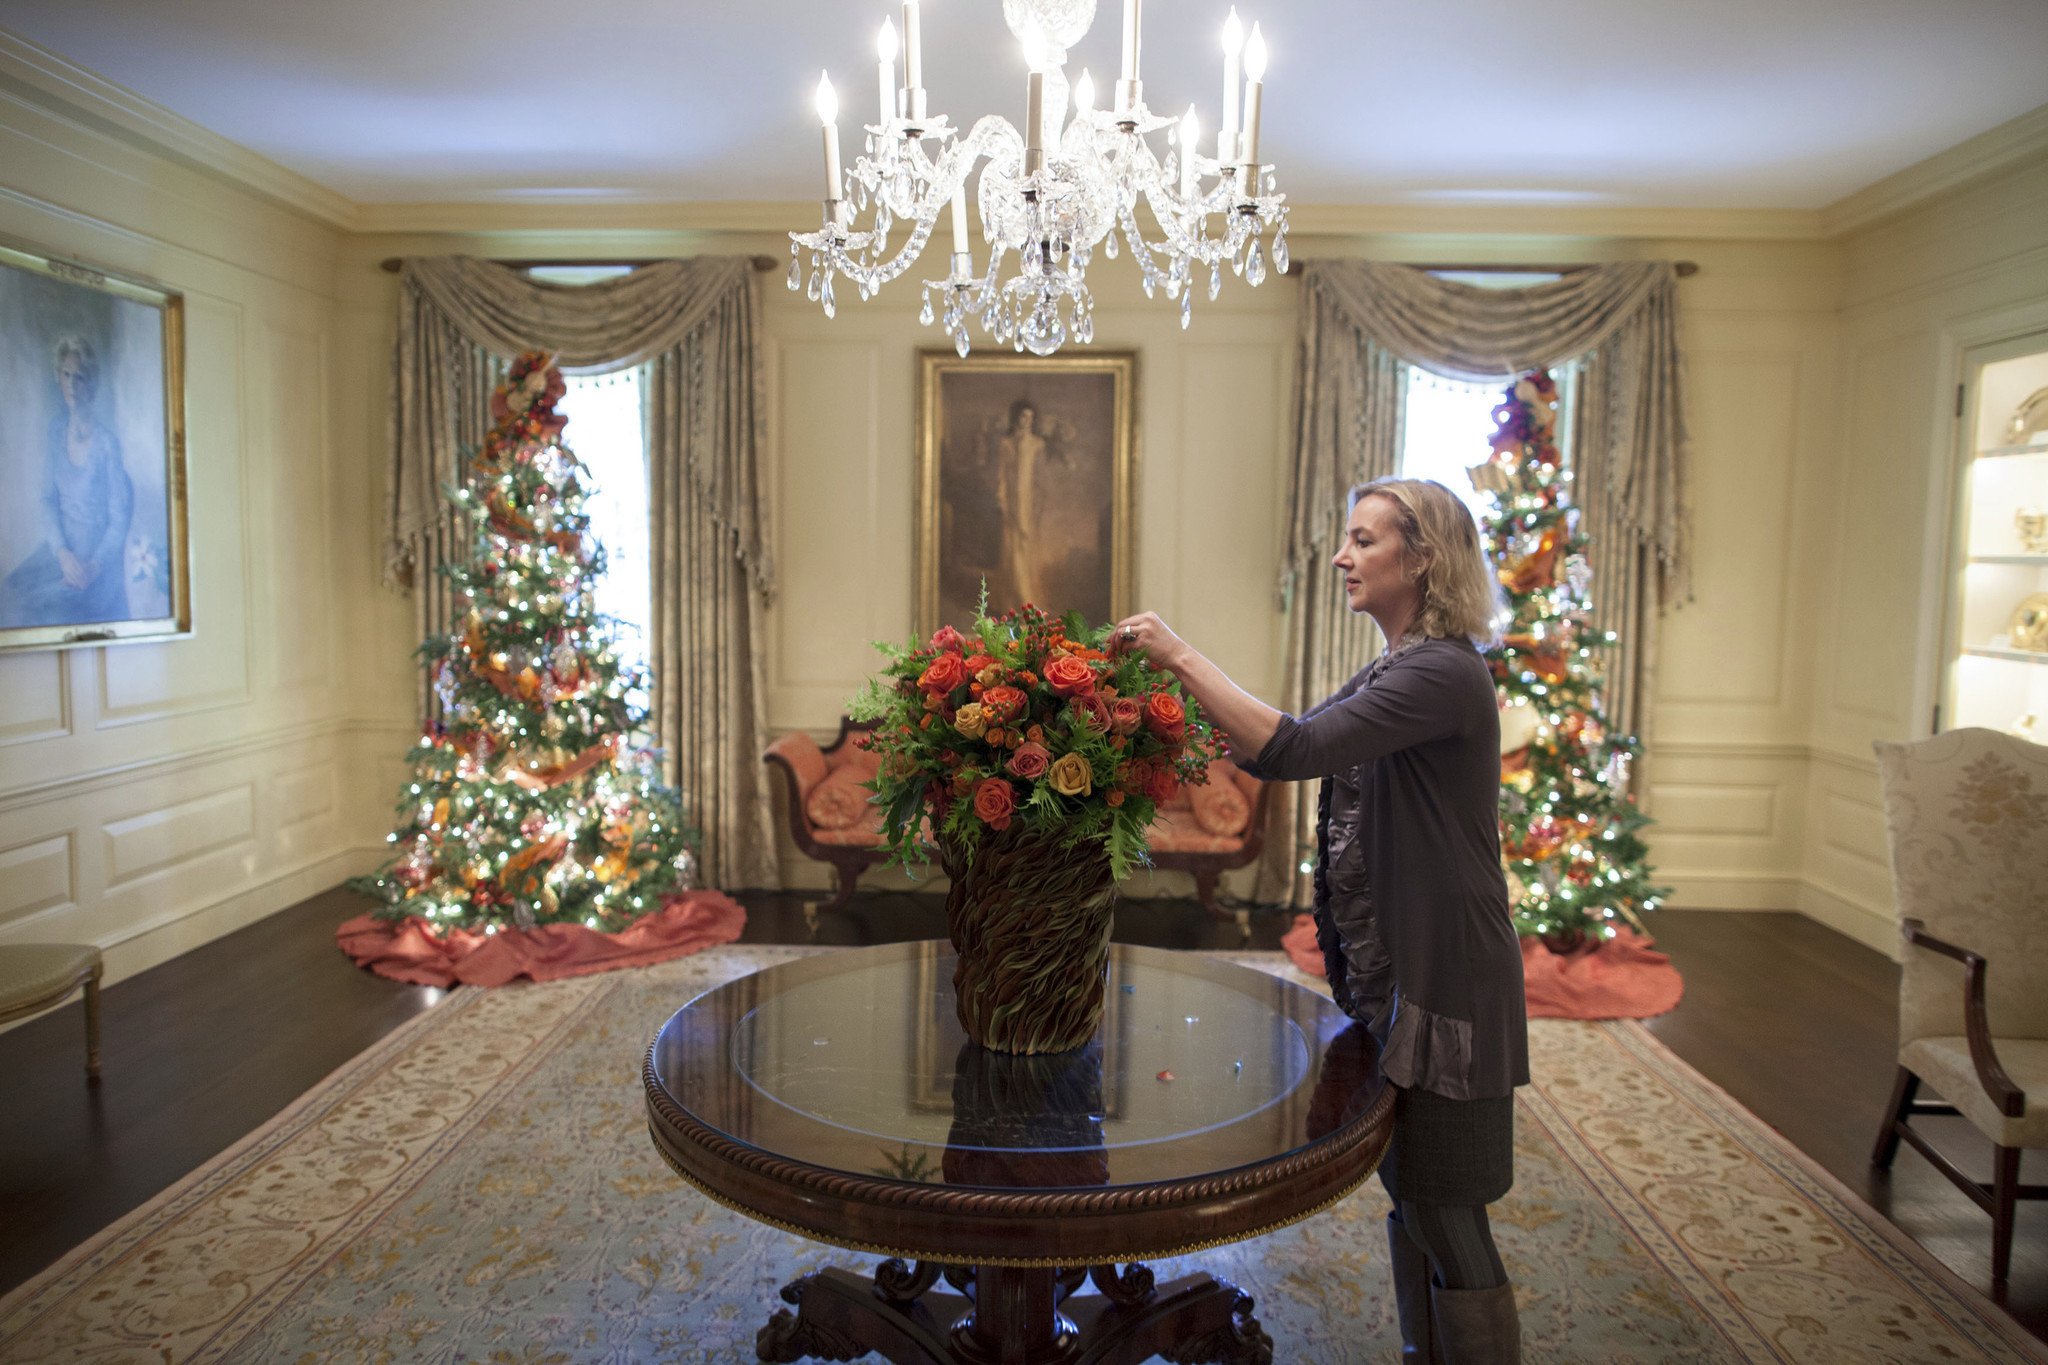 Former White House Florist Laura Dowling On Garden Show Time With